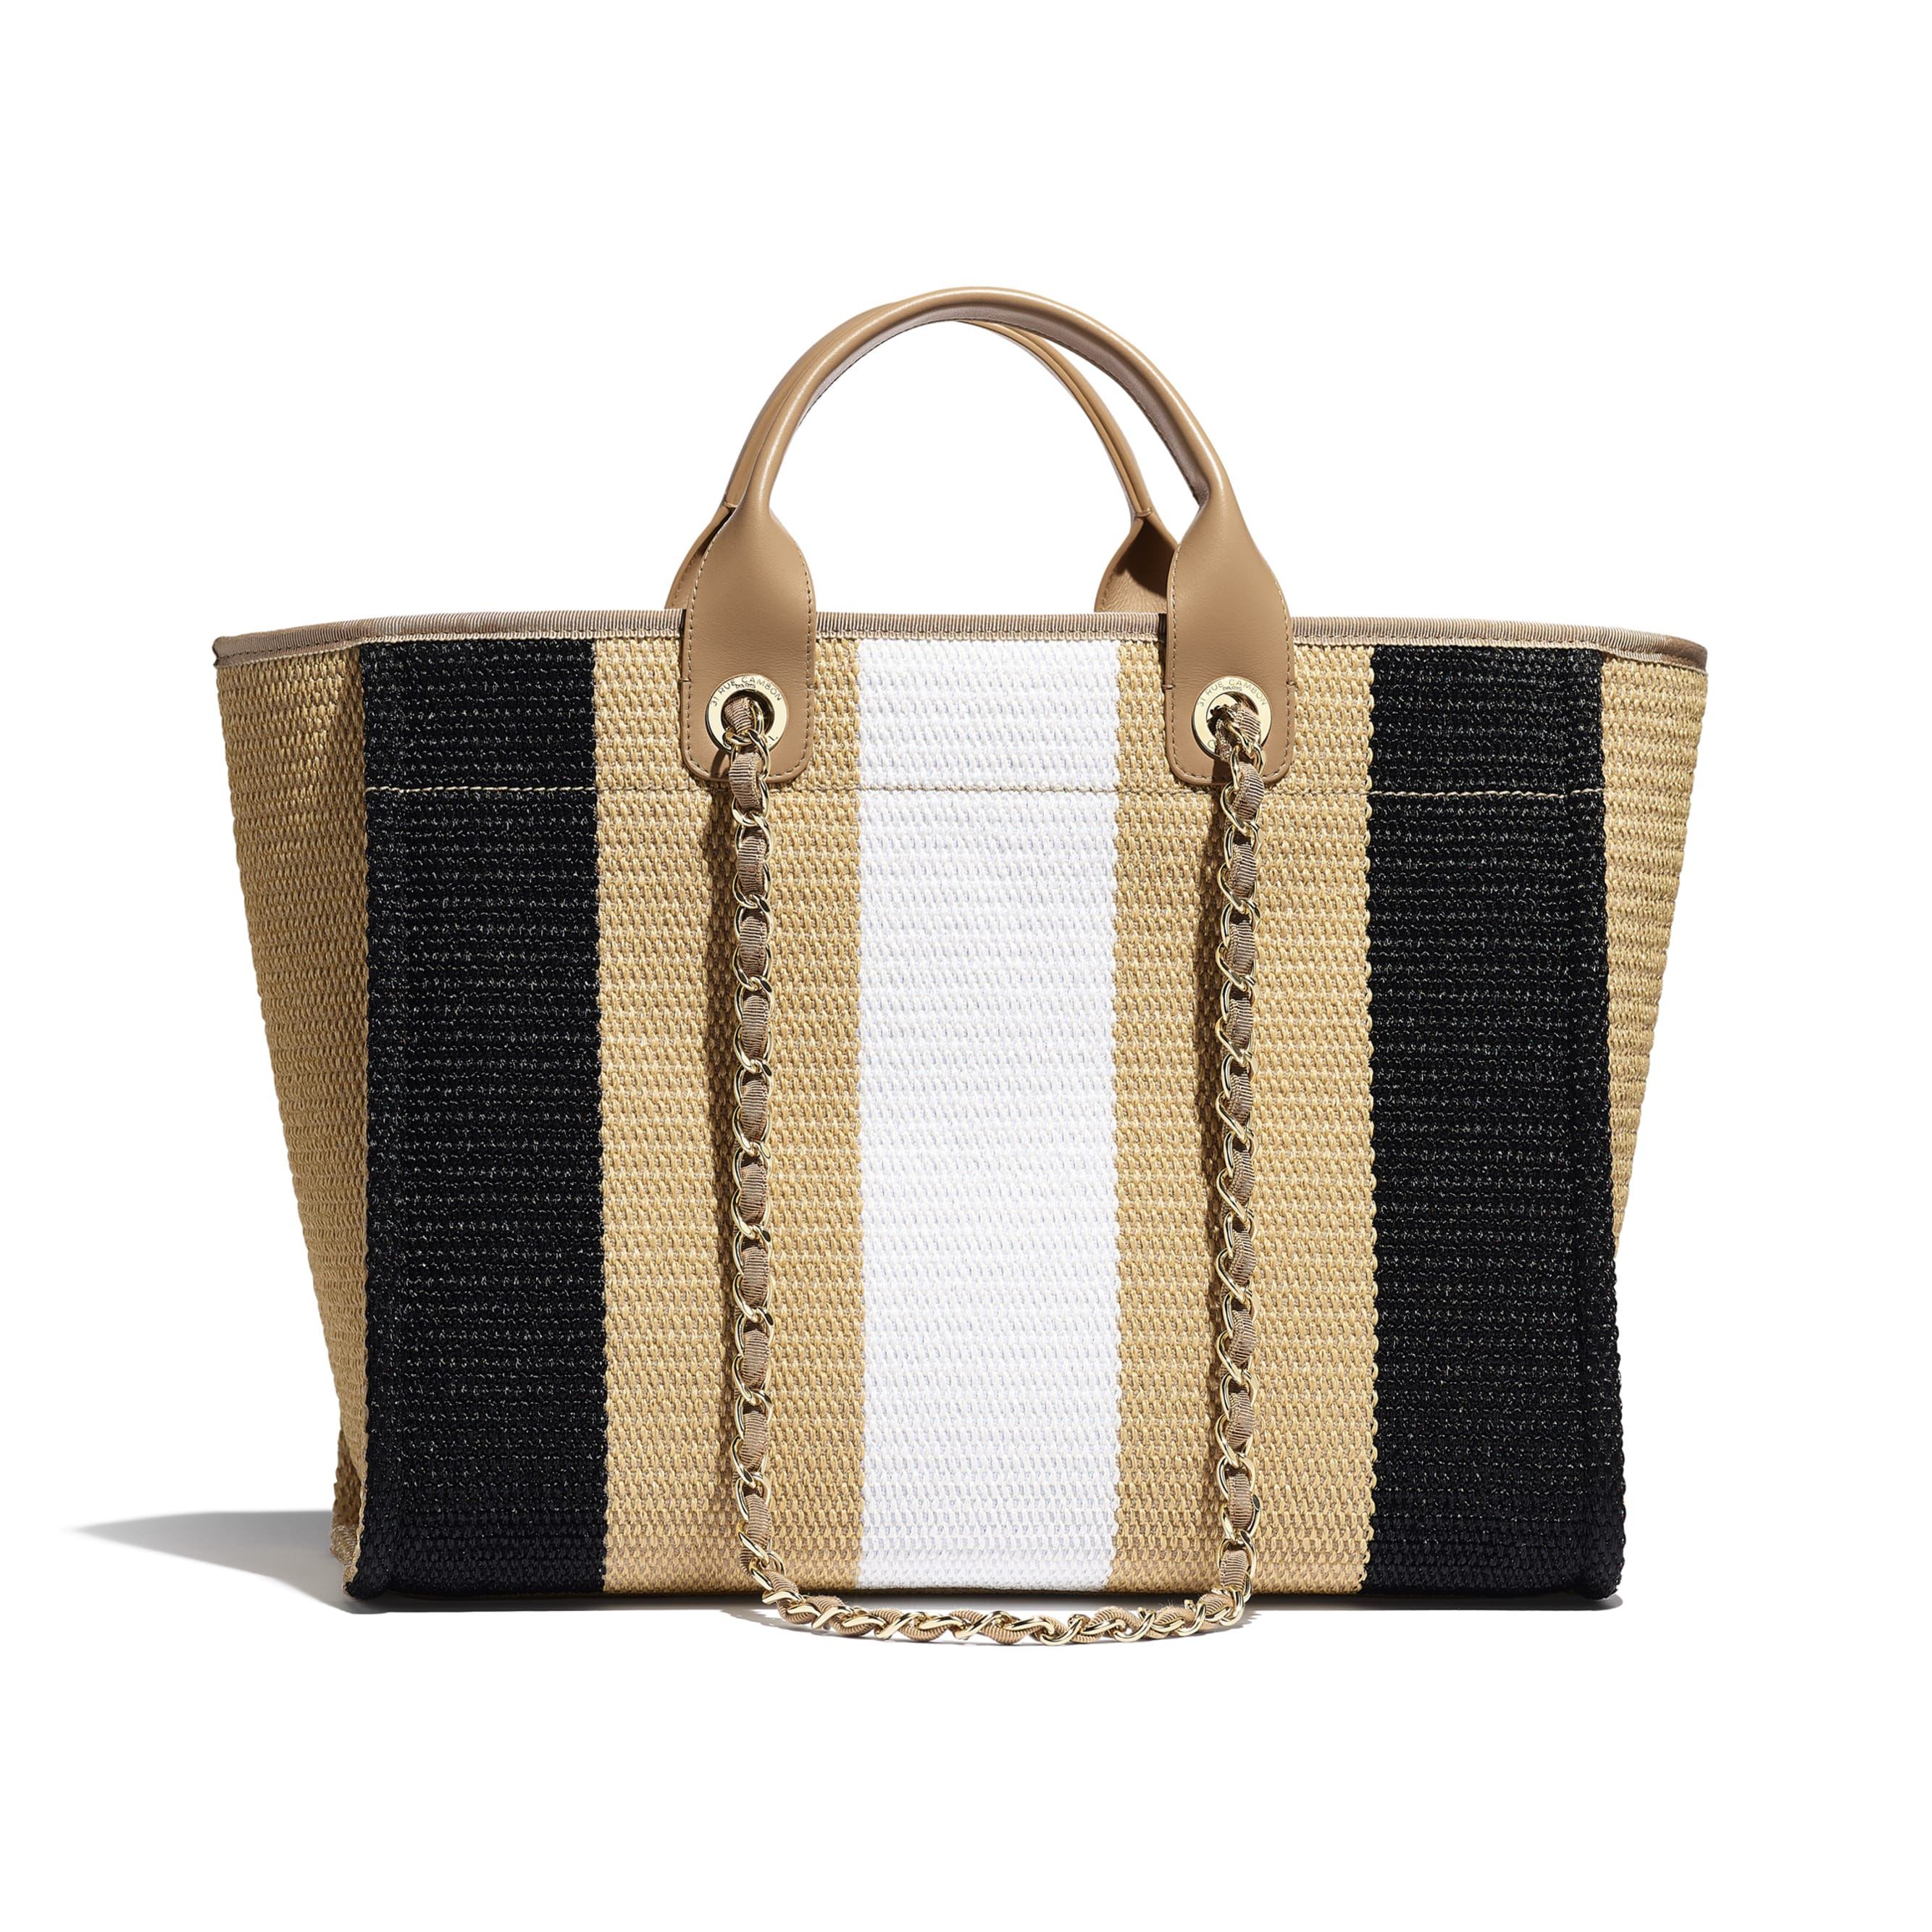 Shopping Bag - Beige, Black & Ivory - Viscose, Cotton, Calfskin & Gold-Tone Metal - Alternative view - see standard sized version